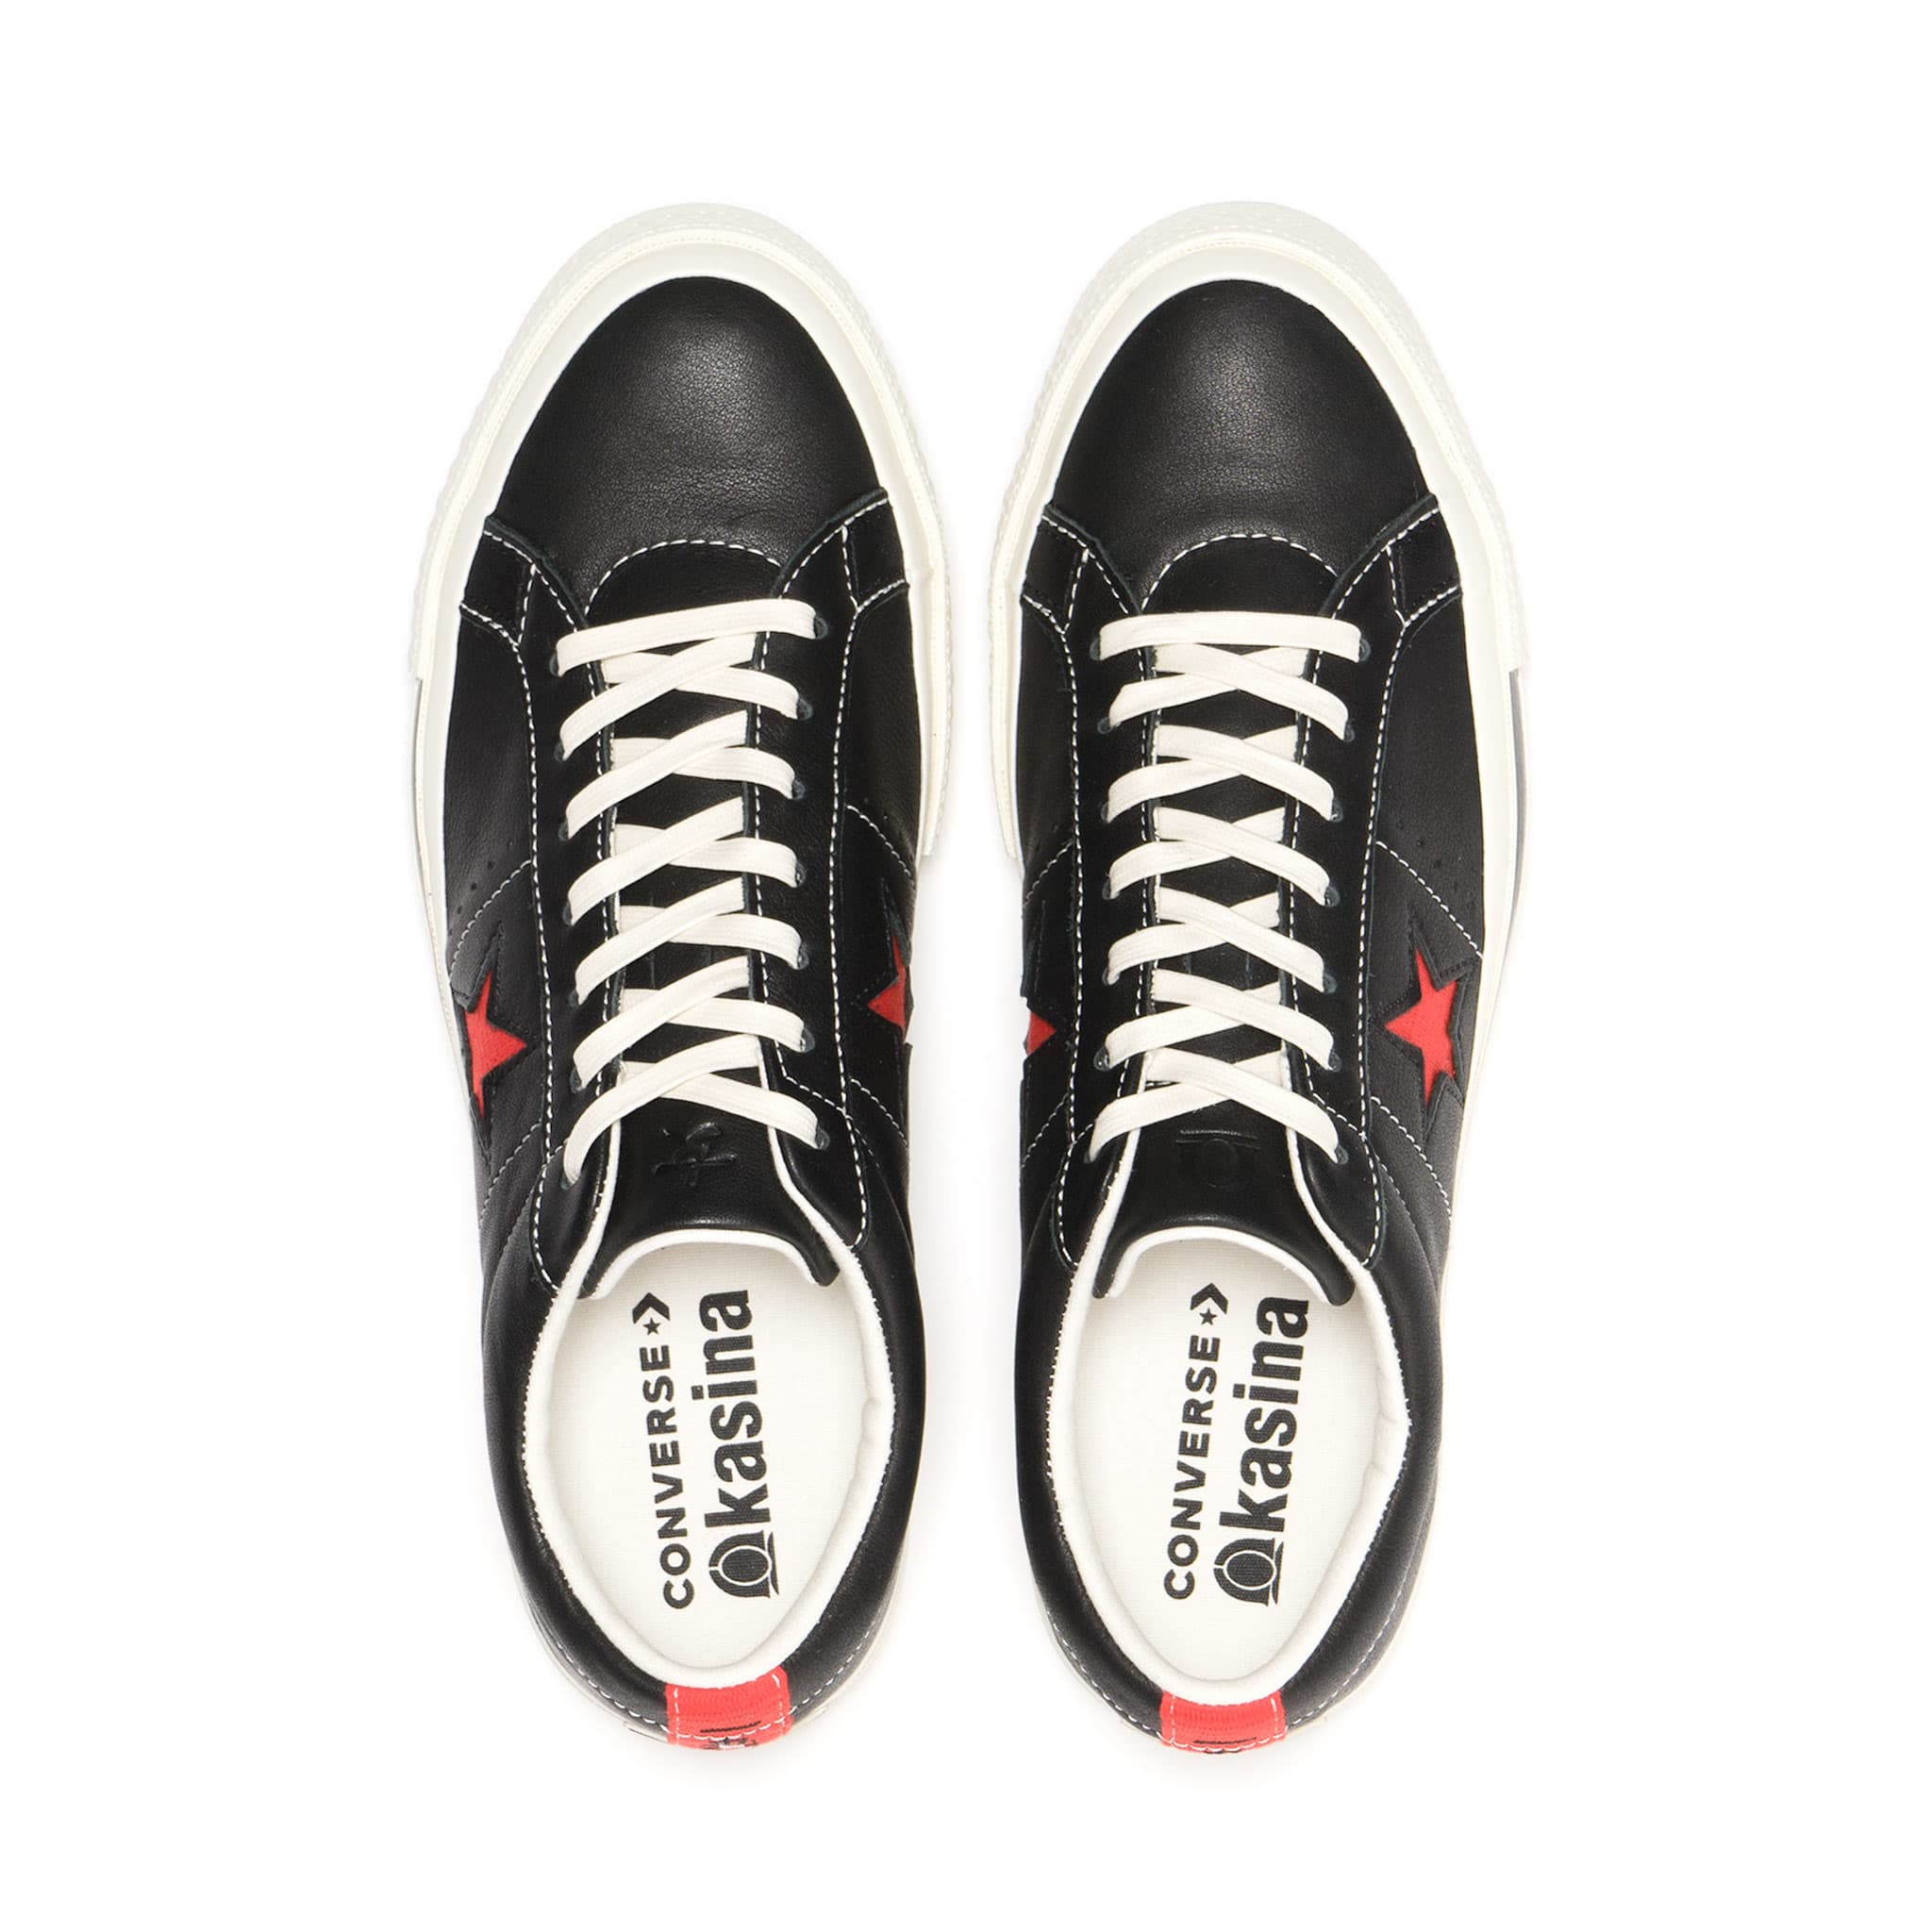 27f2c45d42b961 Kasina Seoul taps Converse for a special collaborative capsule to celebrate  its 20th anniversary. Opting to customize the One Star low and CT1970 ox